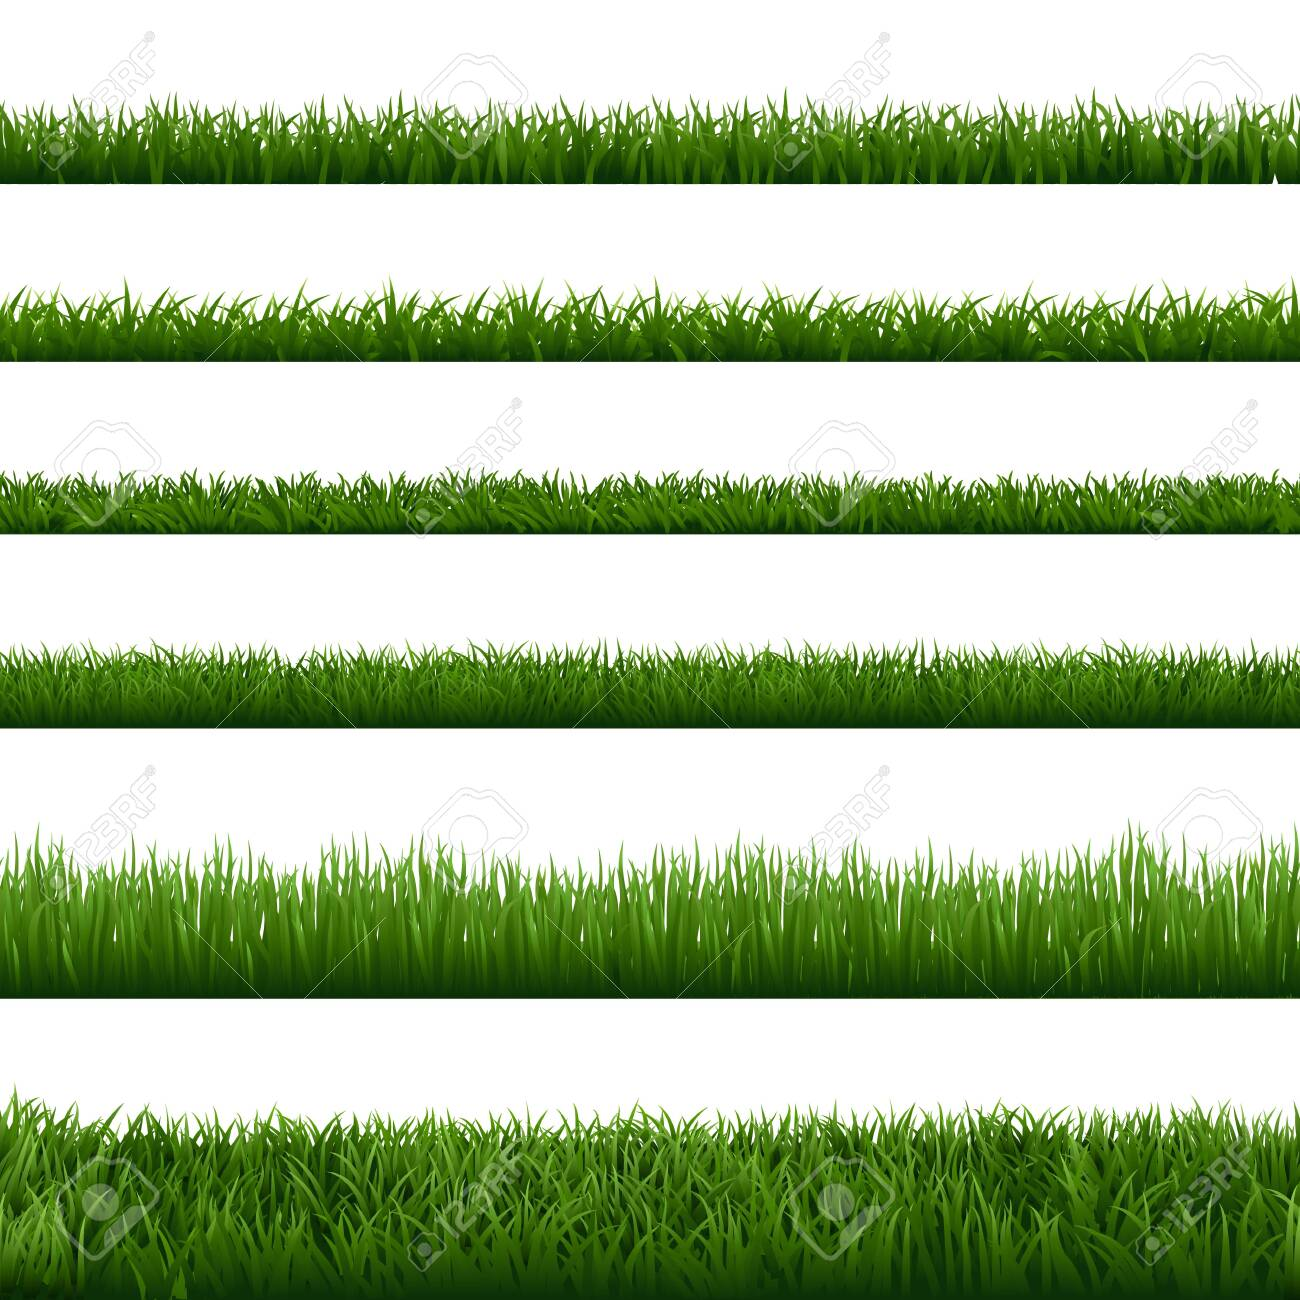 Realistic grass borders. Green garden herb plant, field landscape fresh lawn element, lush meadow gardening foliage vector isolated seamless border set. natural floral vegetation summer, spring frames - 142998392